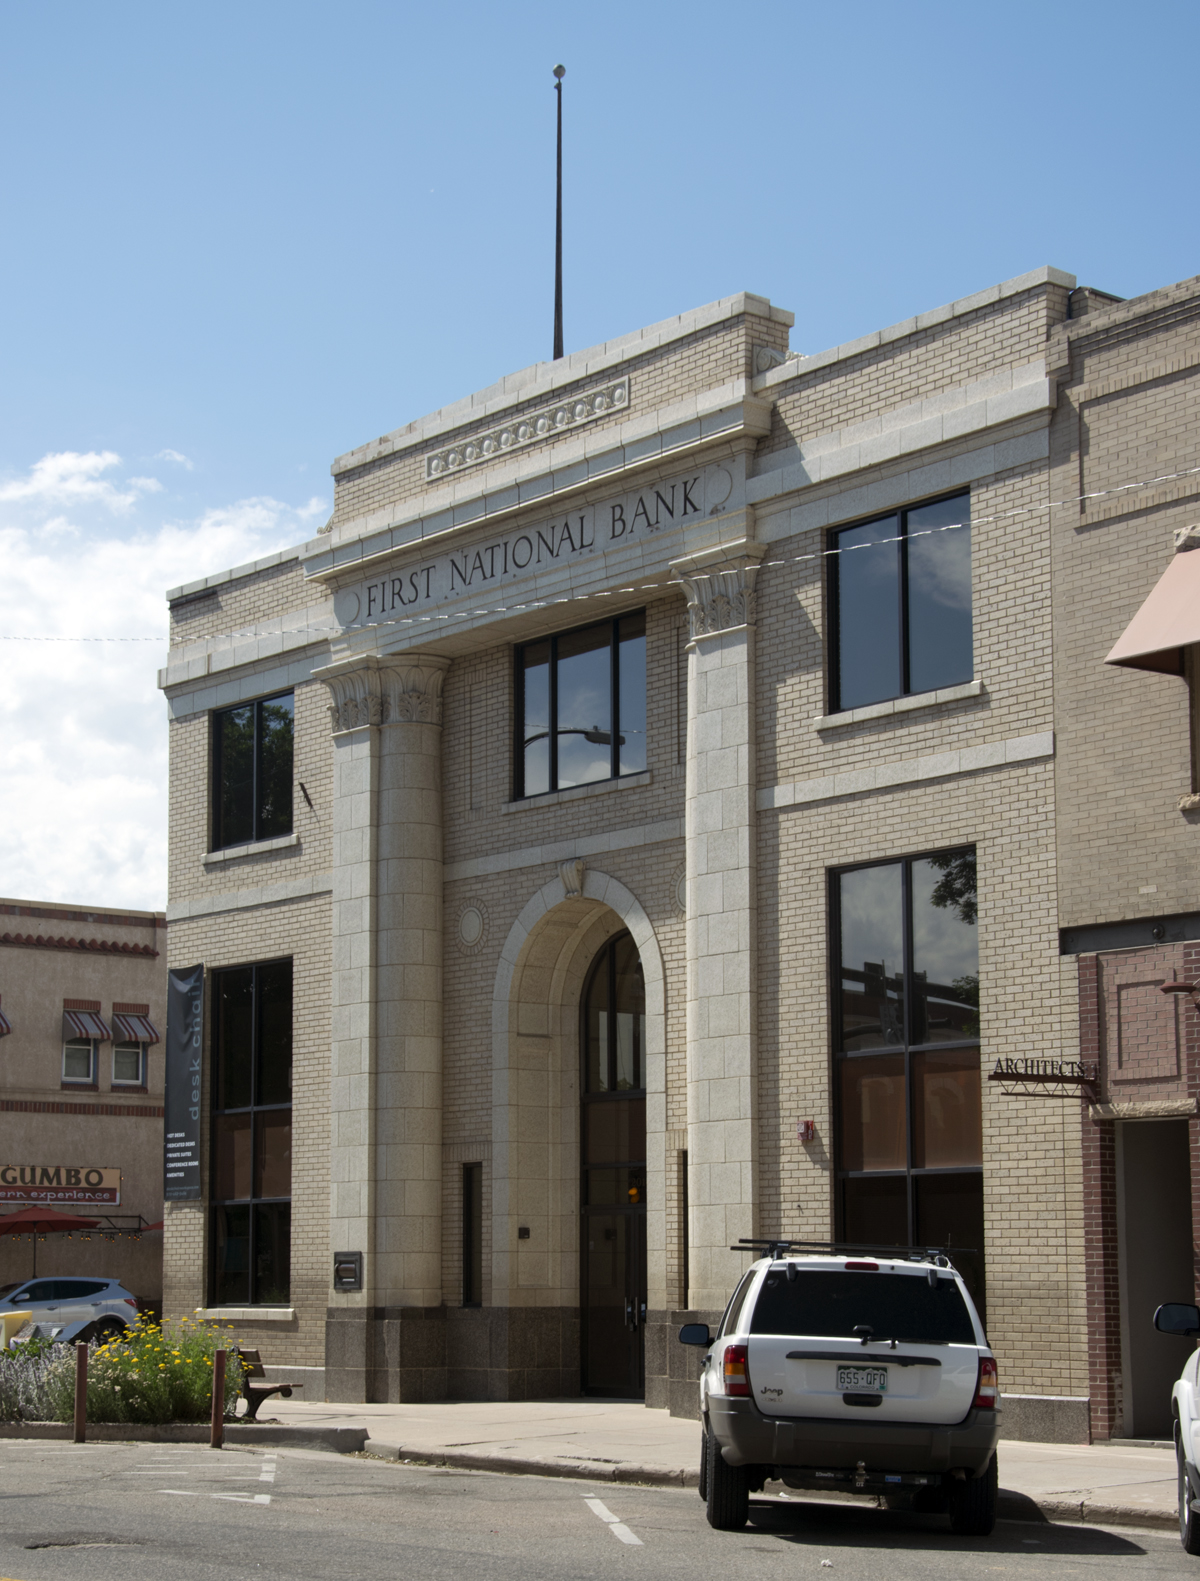 Loveland First National Bank